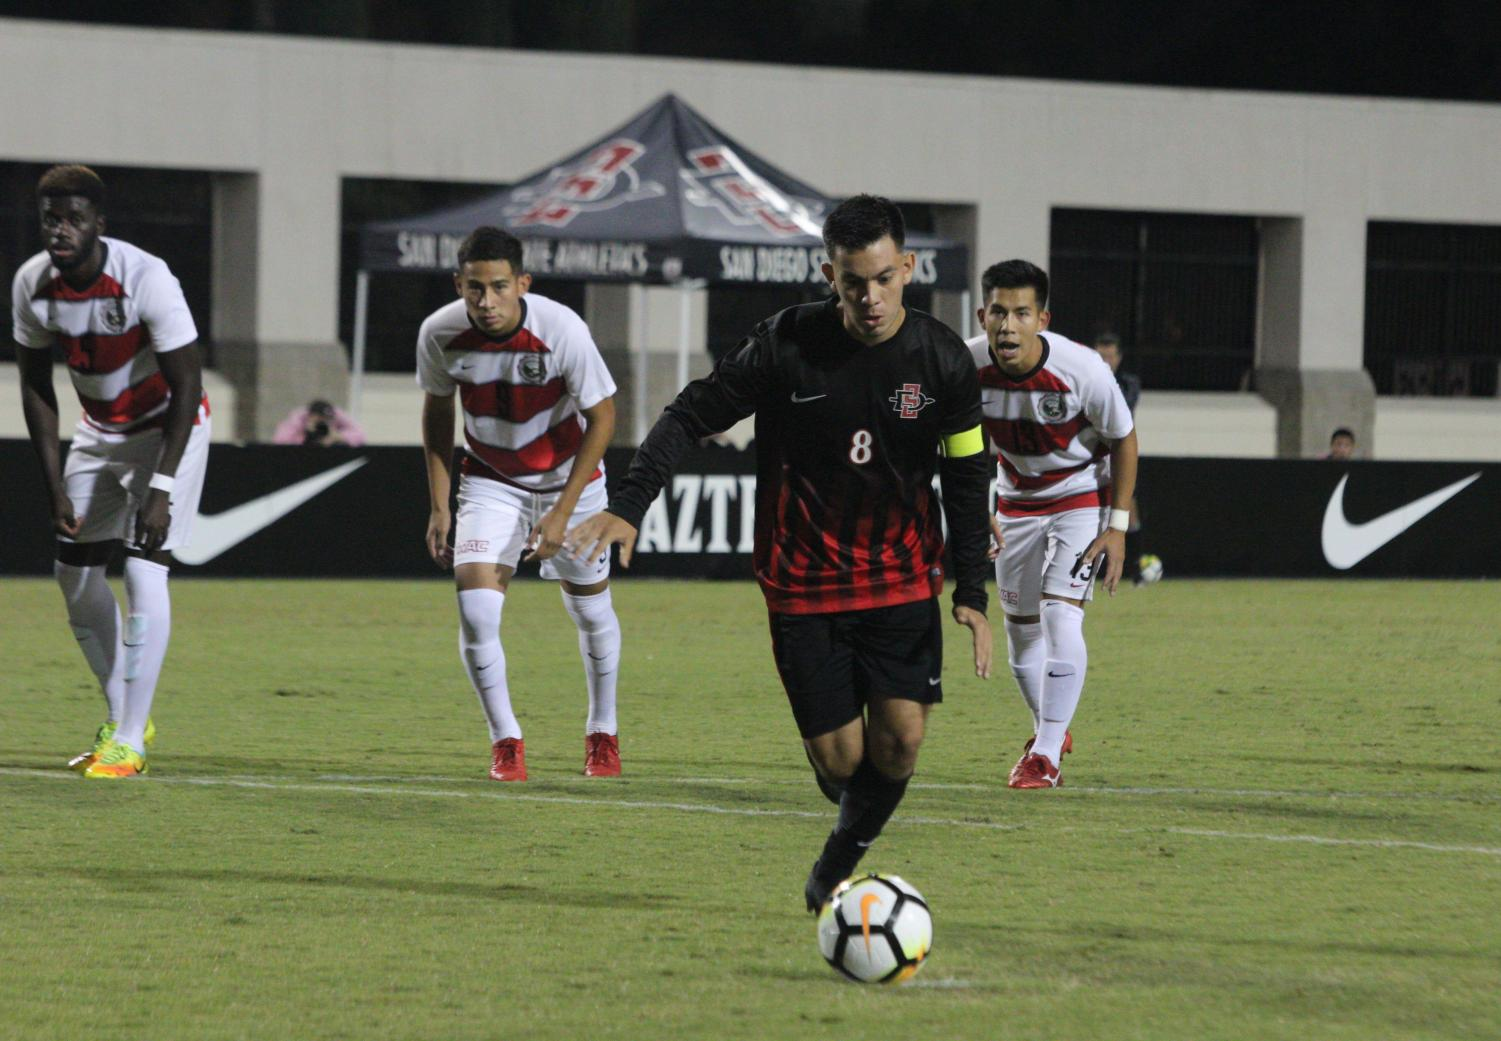 Junior midfielder Pablo Pelaez lines up for a kick during the Aztecs 2-1 victory over UNLV on Sept. 24 at the SDSU Sports Deck.